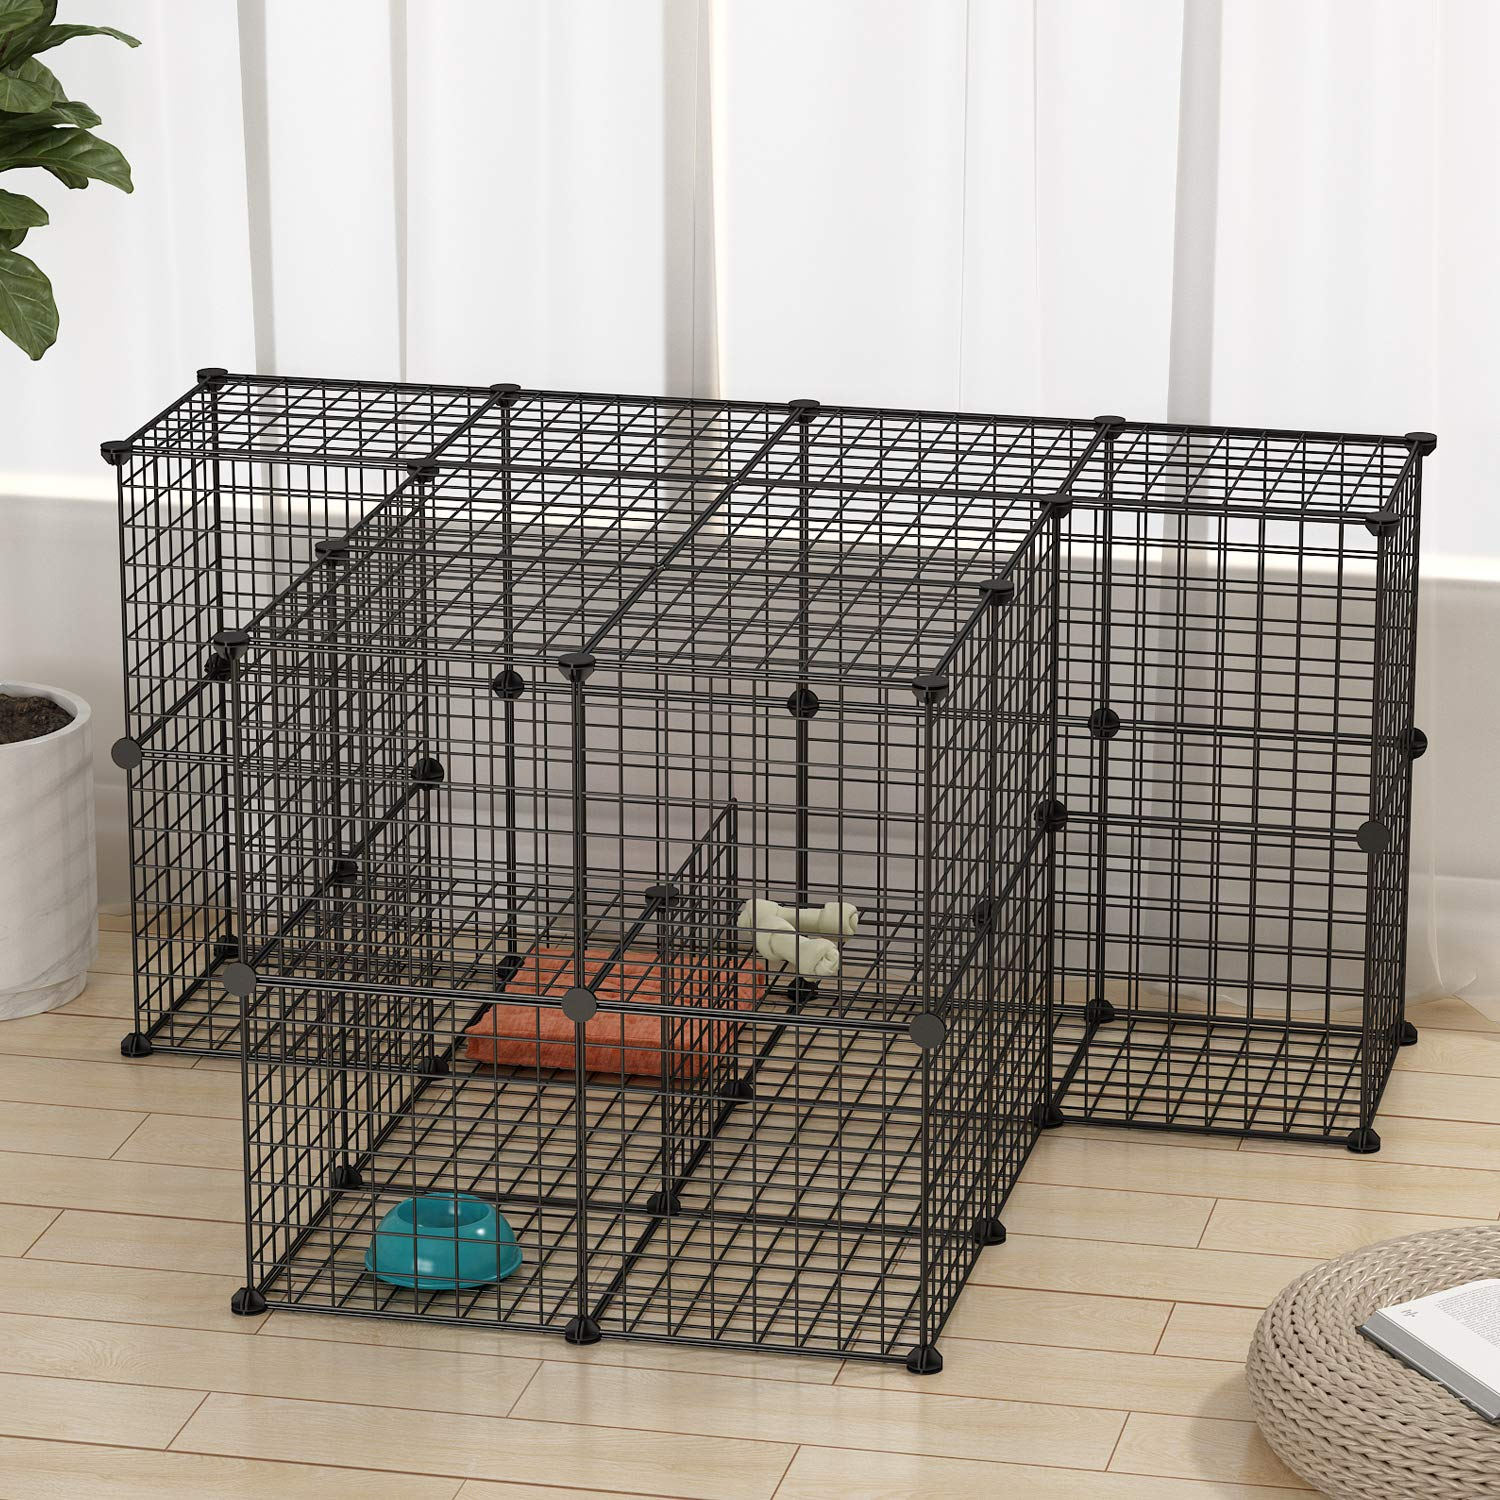 JYYG Small Pet Pen Bunny Cage Dogs Playpen Indoor Out Door Animal Fence Puppy Guinea Pigs, Dwarf Rabbits PET-F (48 Panels, Black) by JYYG